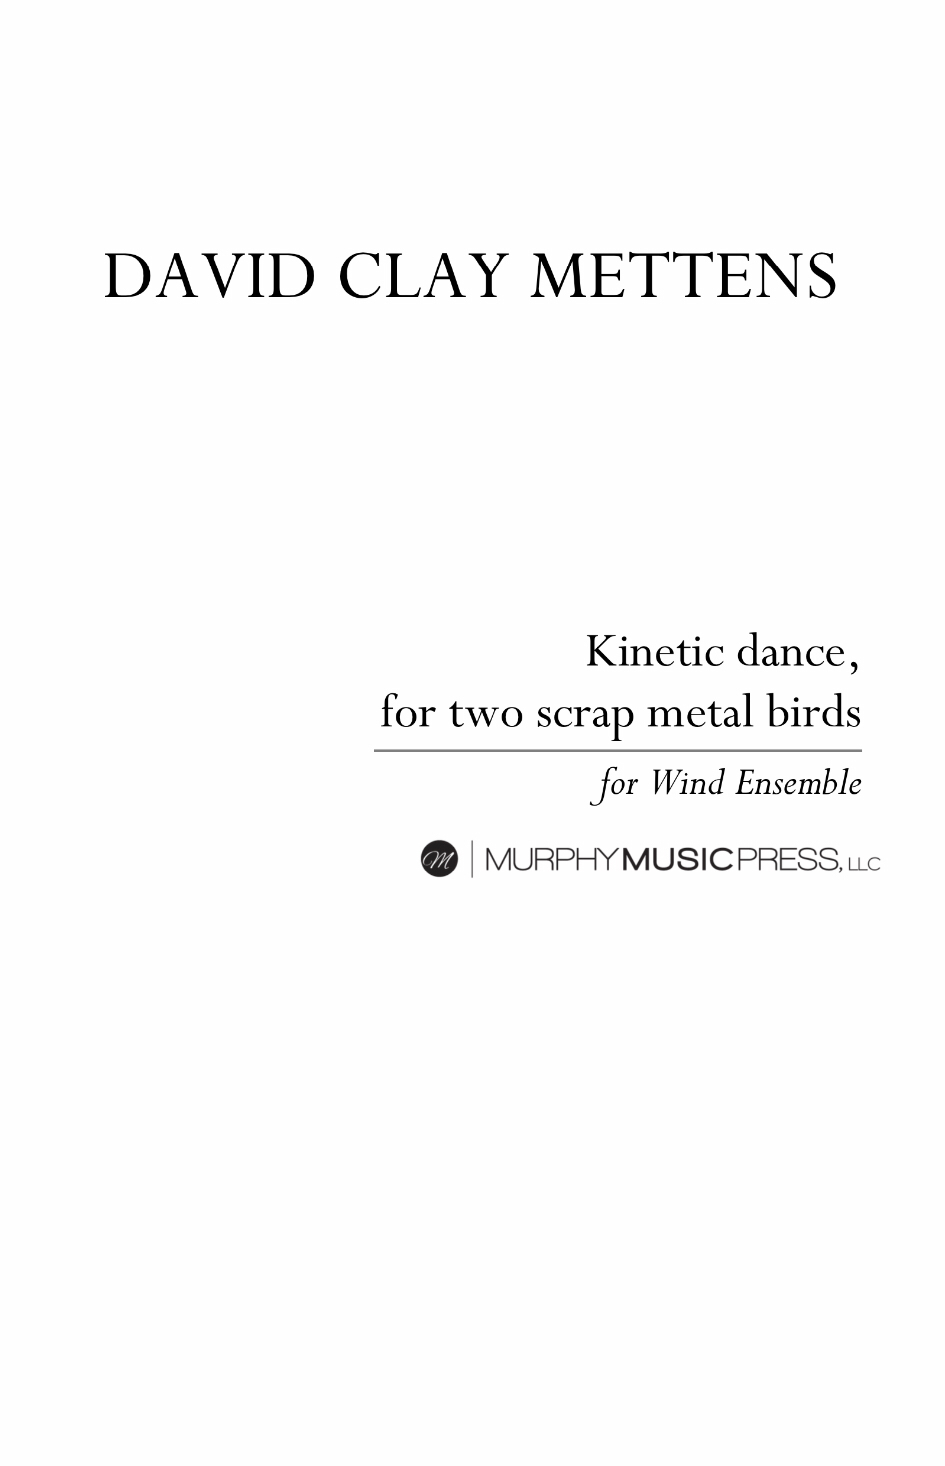 Kinetic Dance For Two Scrap Metal Birds by David Clay Mettens